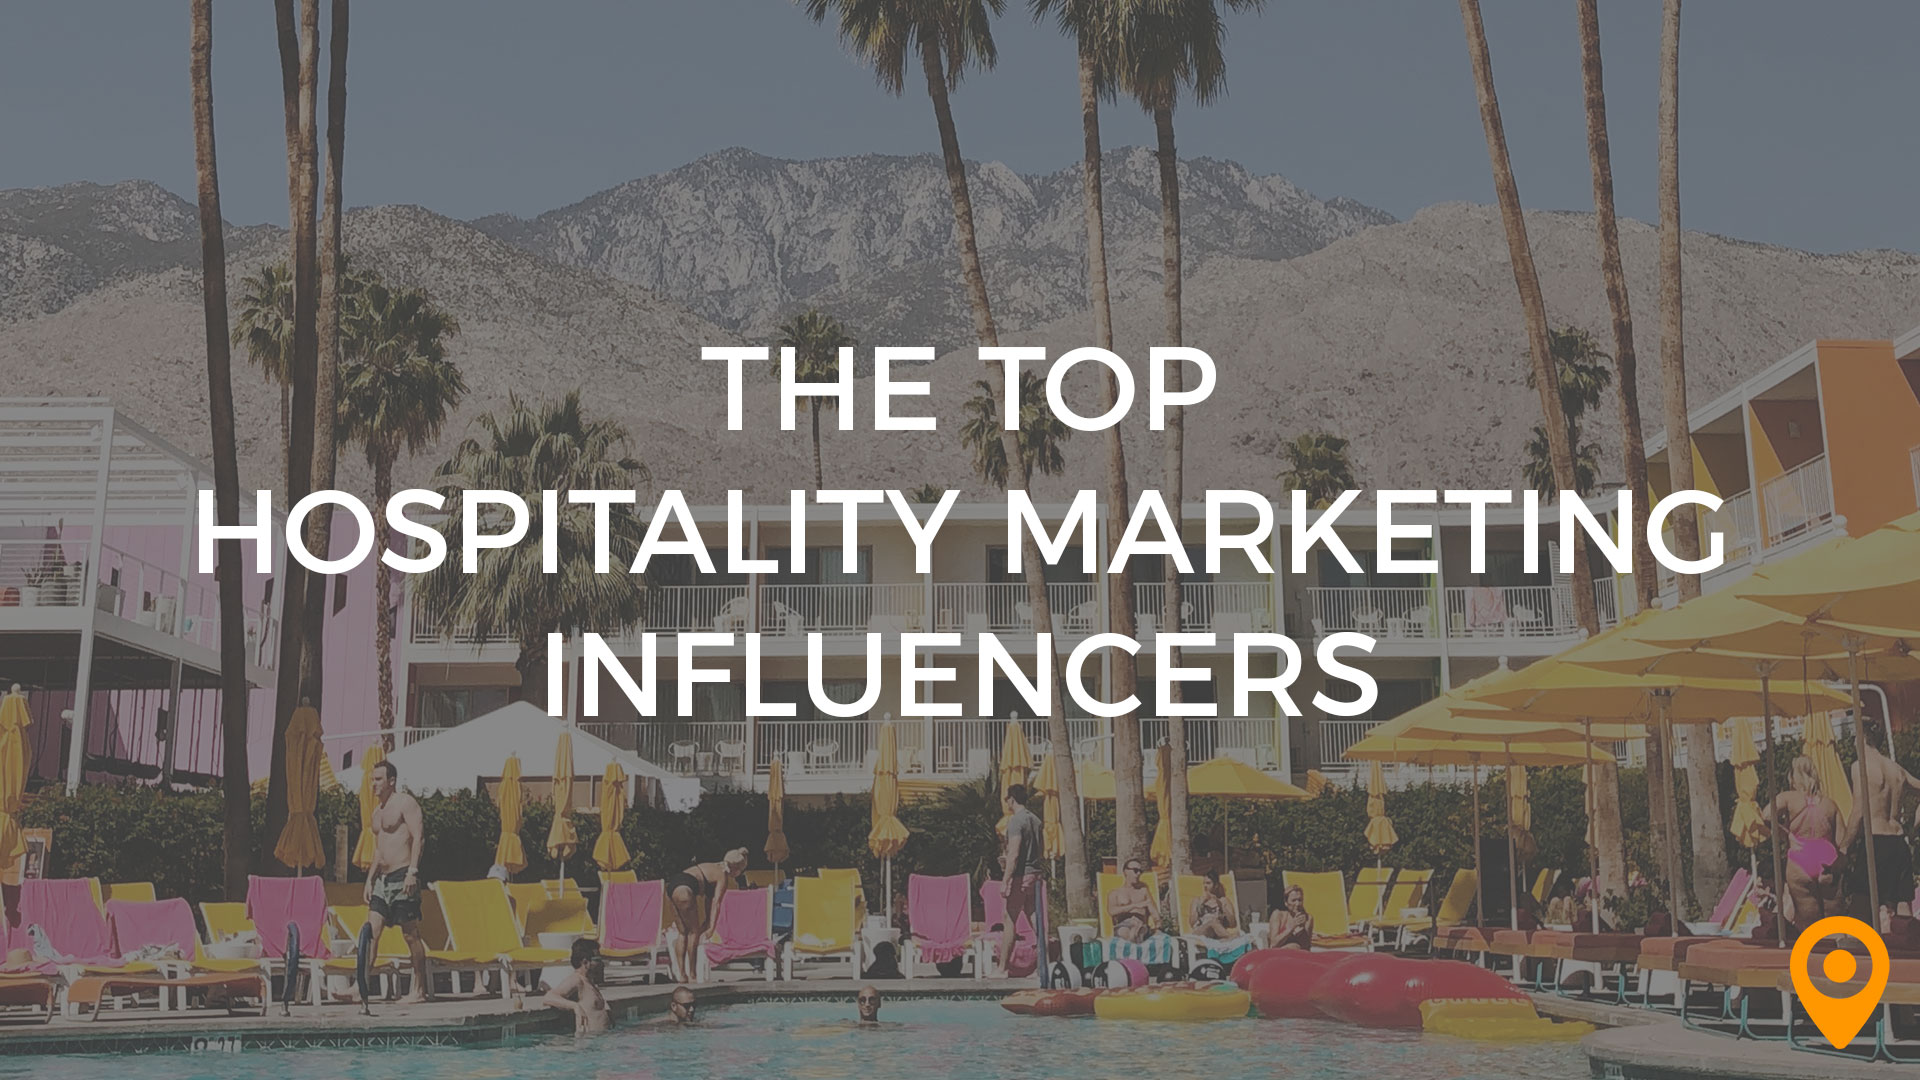 Top Hospitality Marketing Influencers